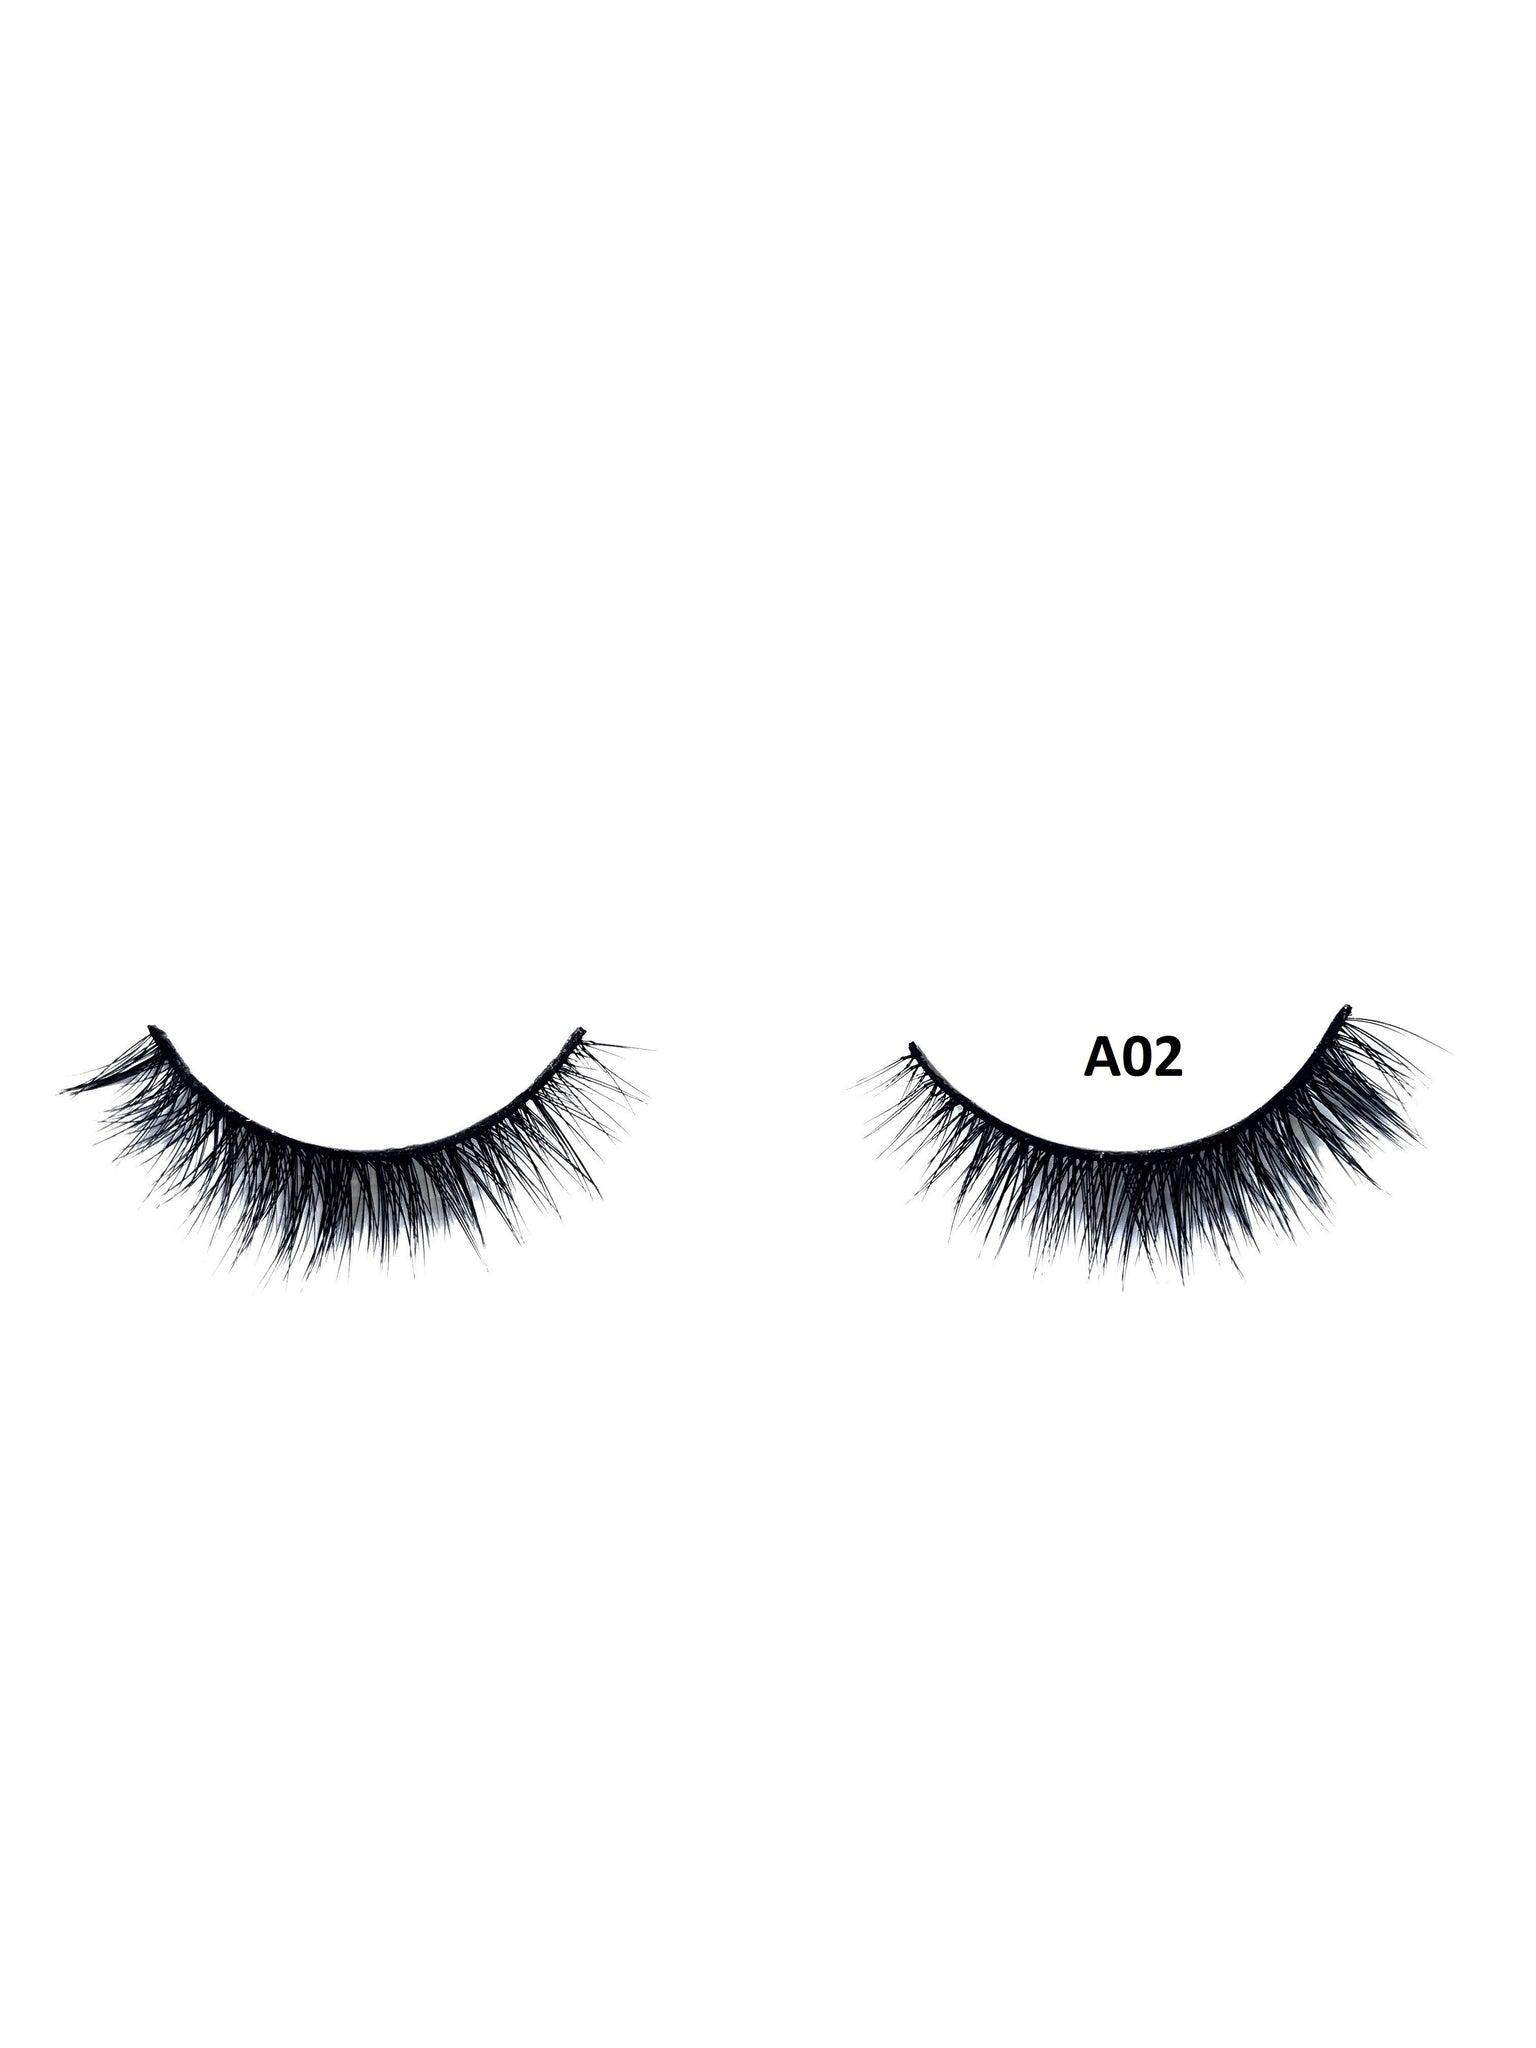 Mink 3D Lashes - A01 - Beauty Empire